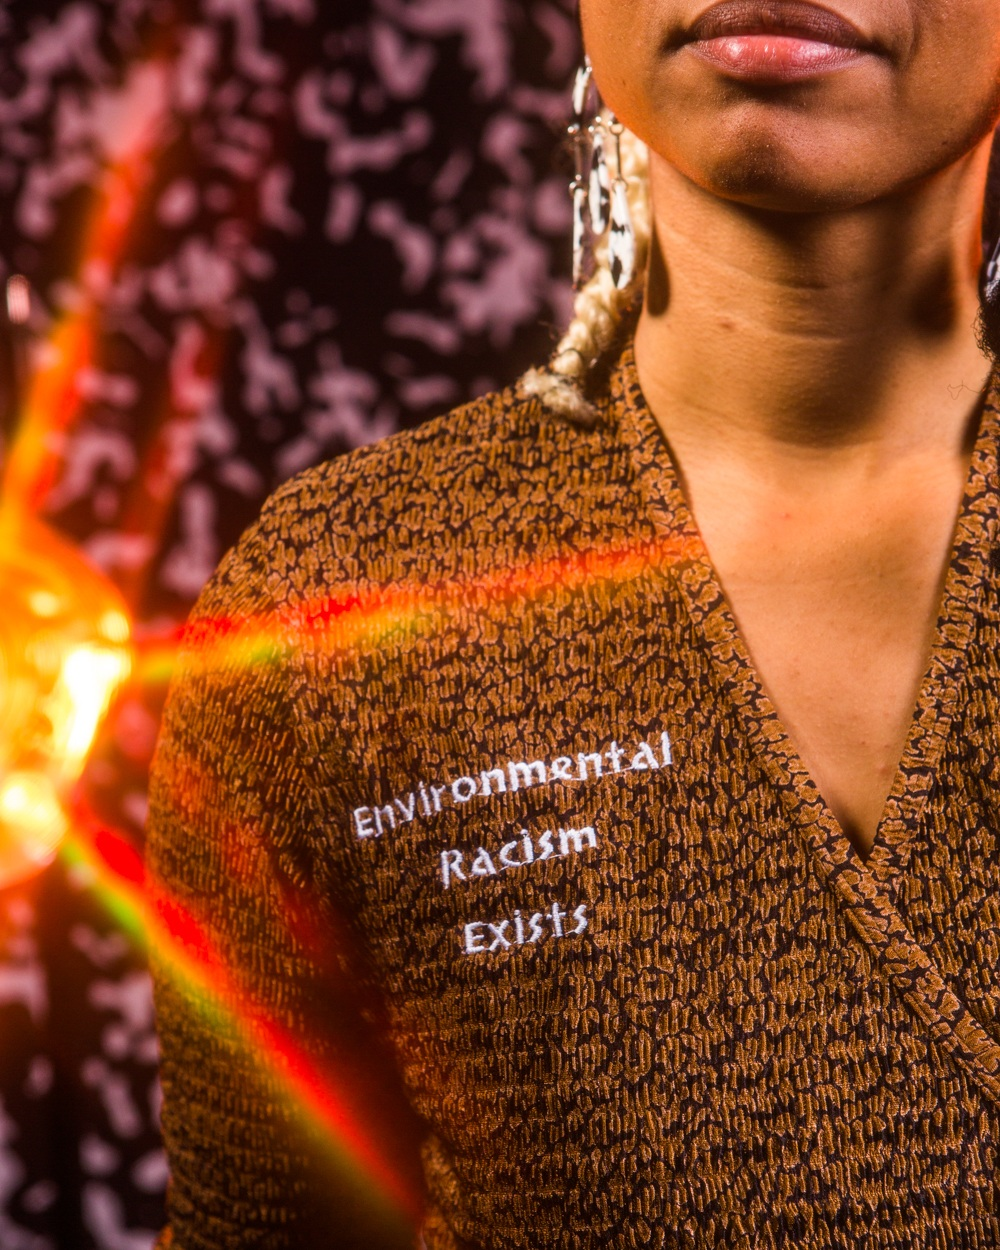 Environmental Racism Exists - Blouse